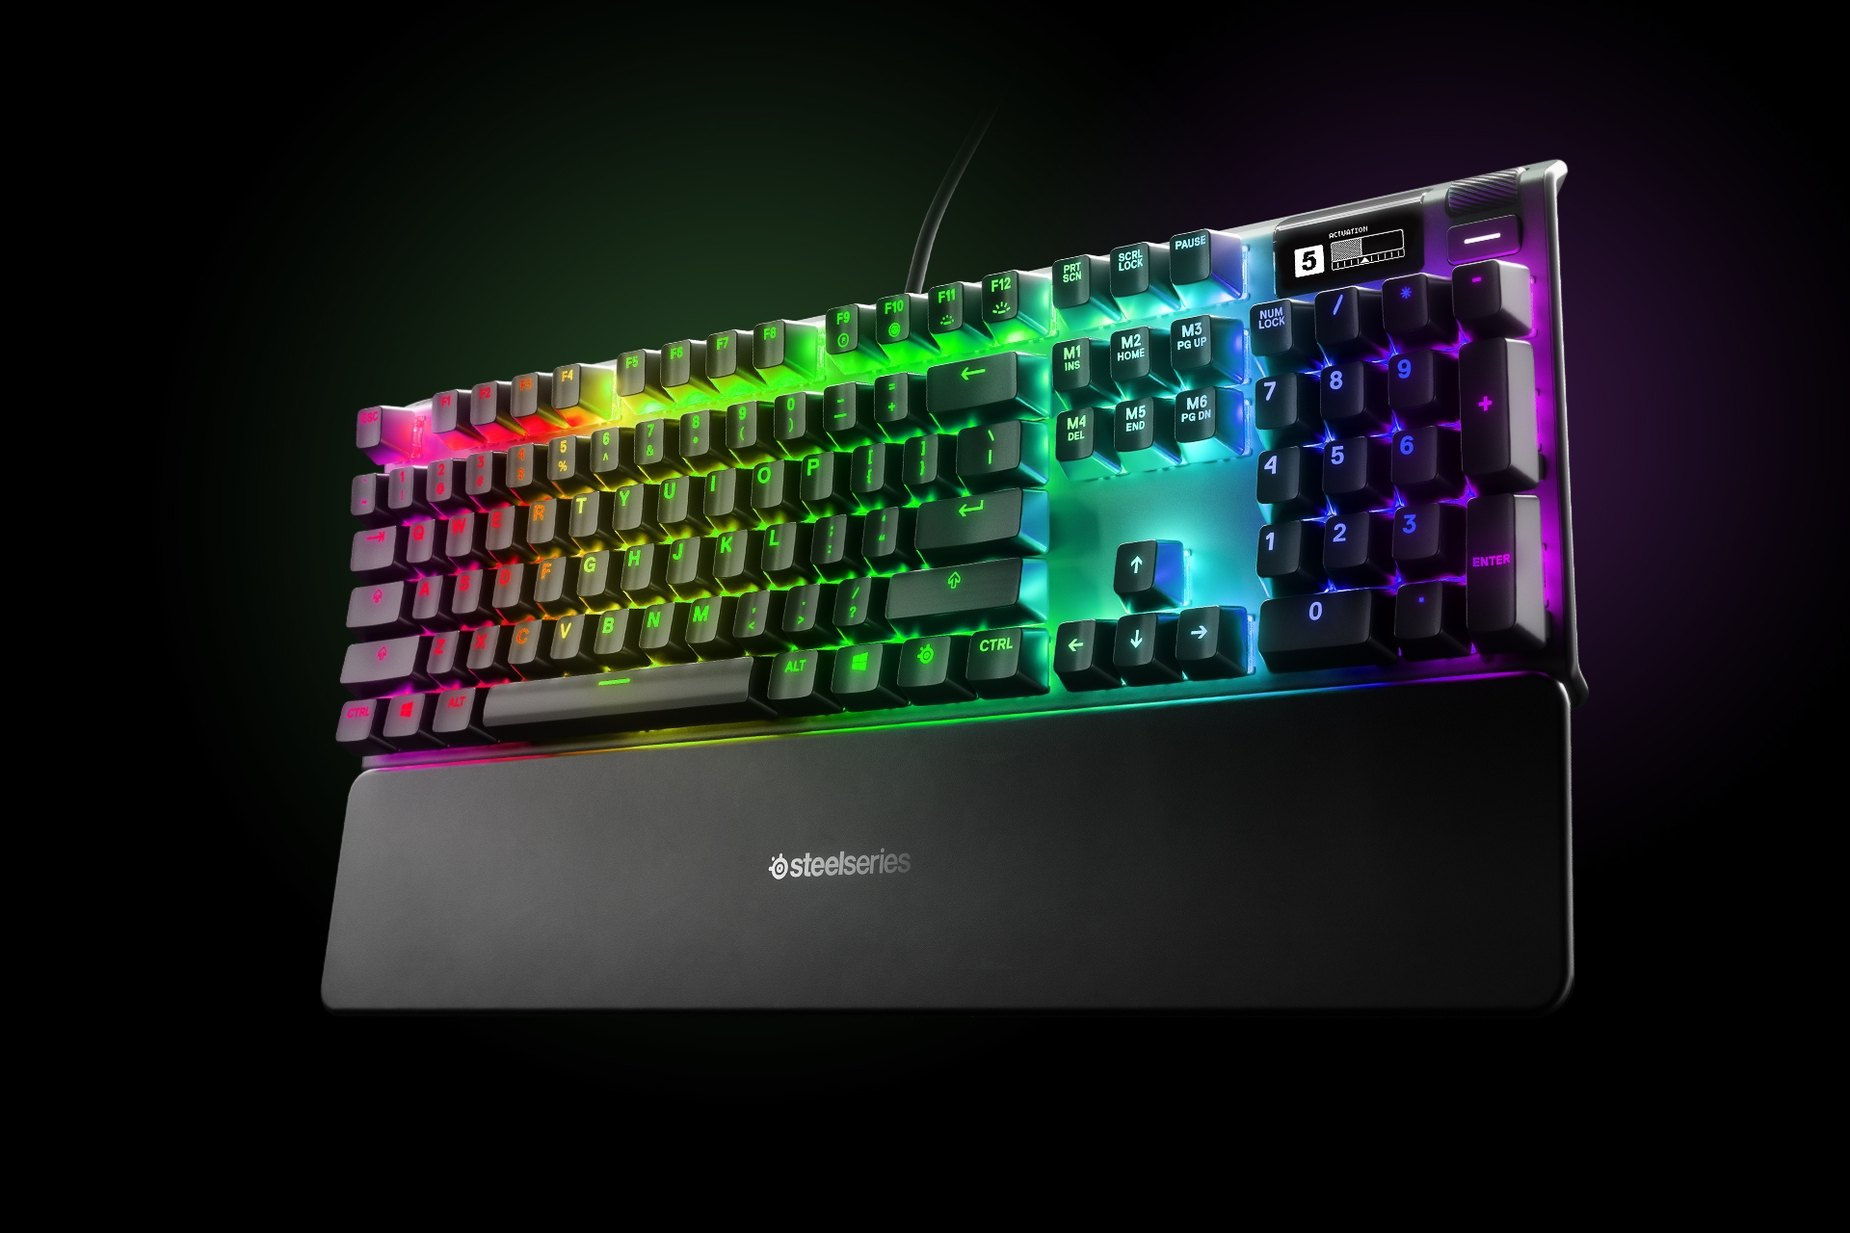 Nordisch - Apex Pro gaming keyboard with the illumination lit up on dark background, also shows the OLED screen and controls used to change settings, switch actuation, and adjust audio